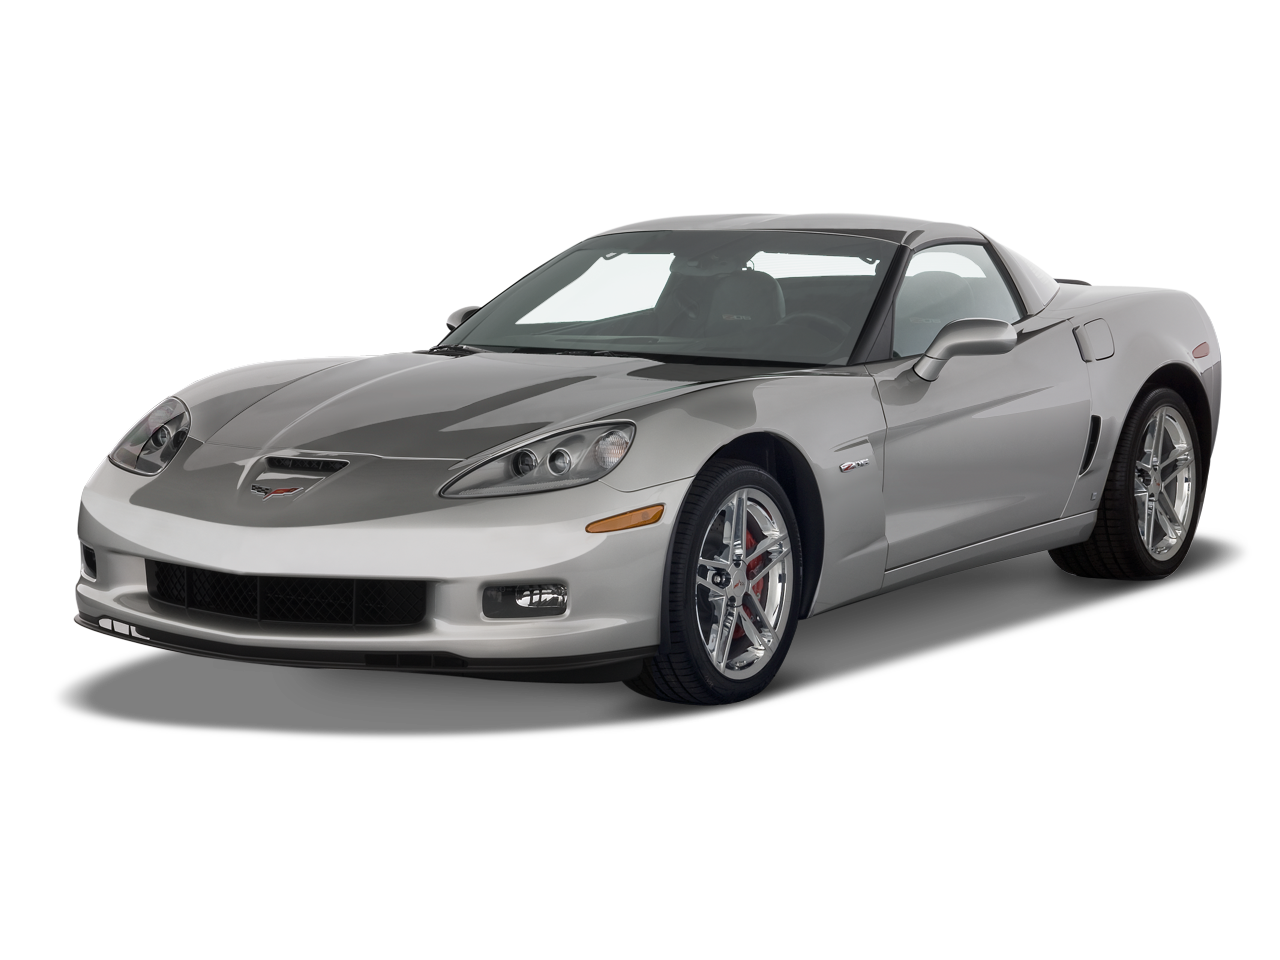 2009 chevrolet corvette zr1 pricing and performance. Black Bedroom Furniture Sets. Home Design Ideas